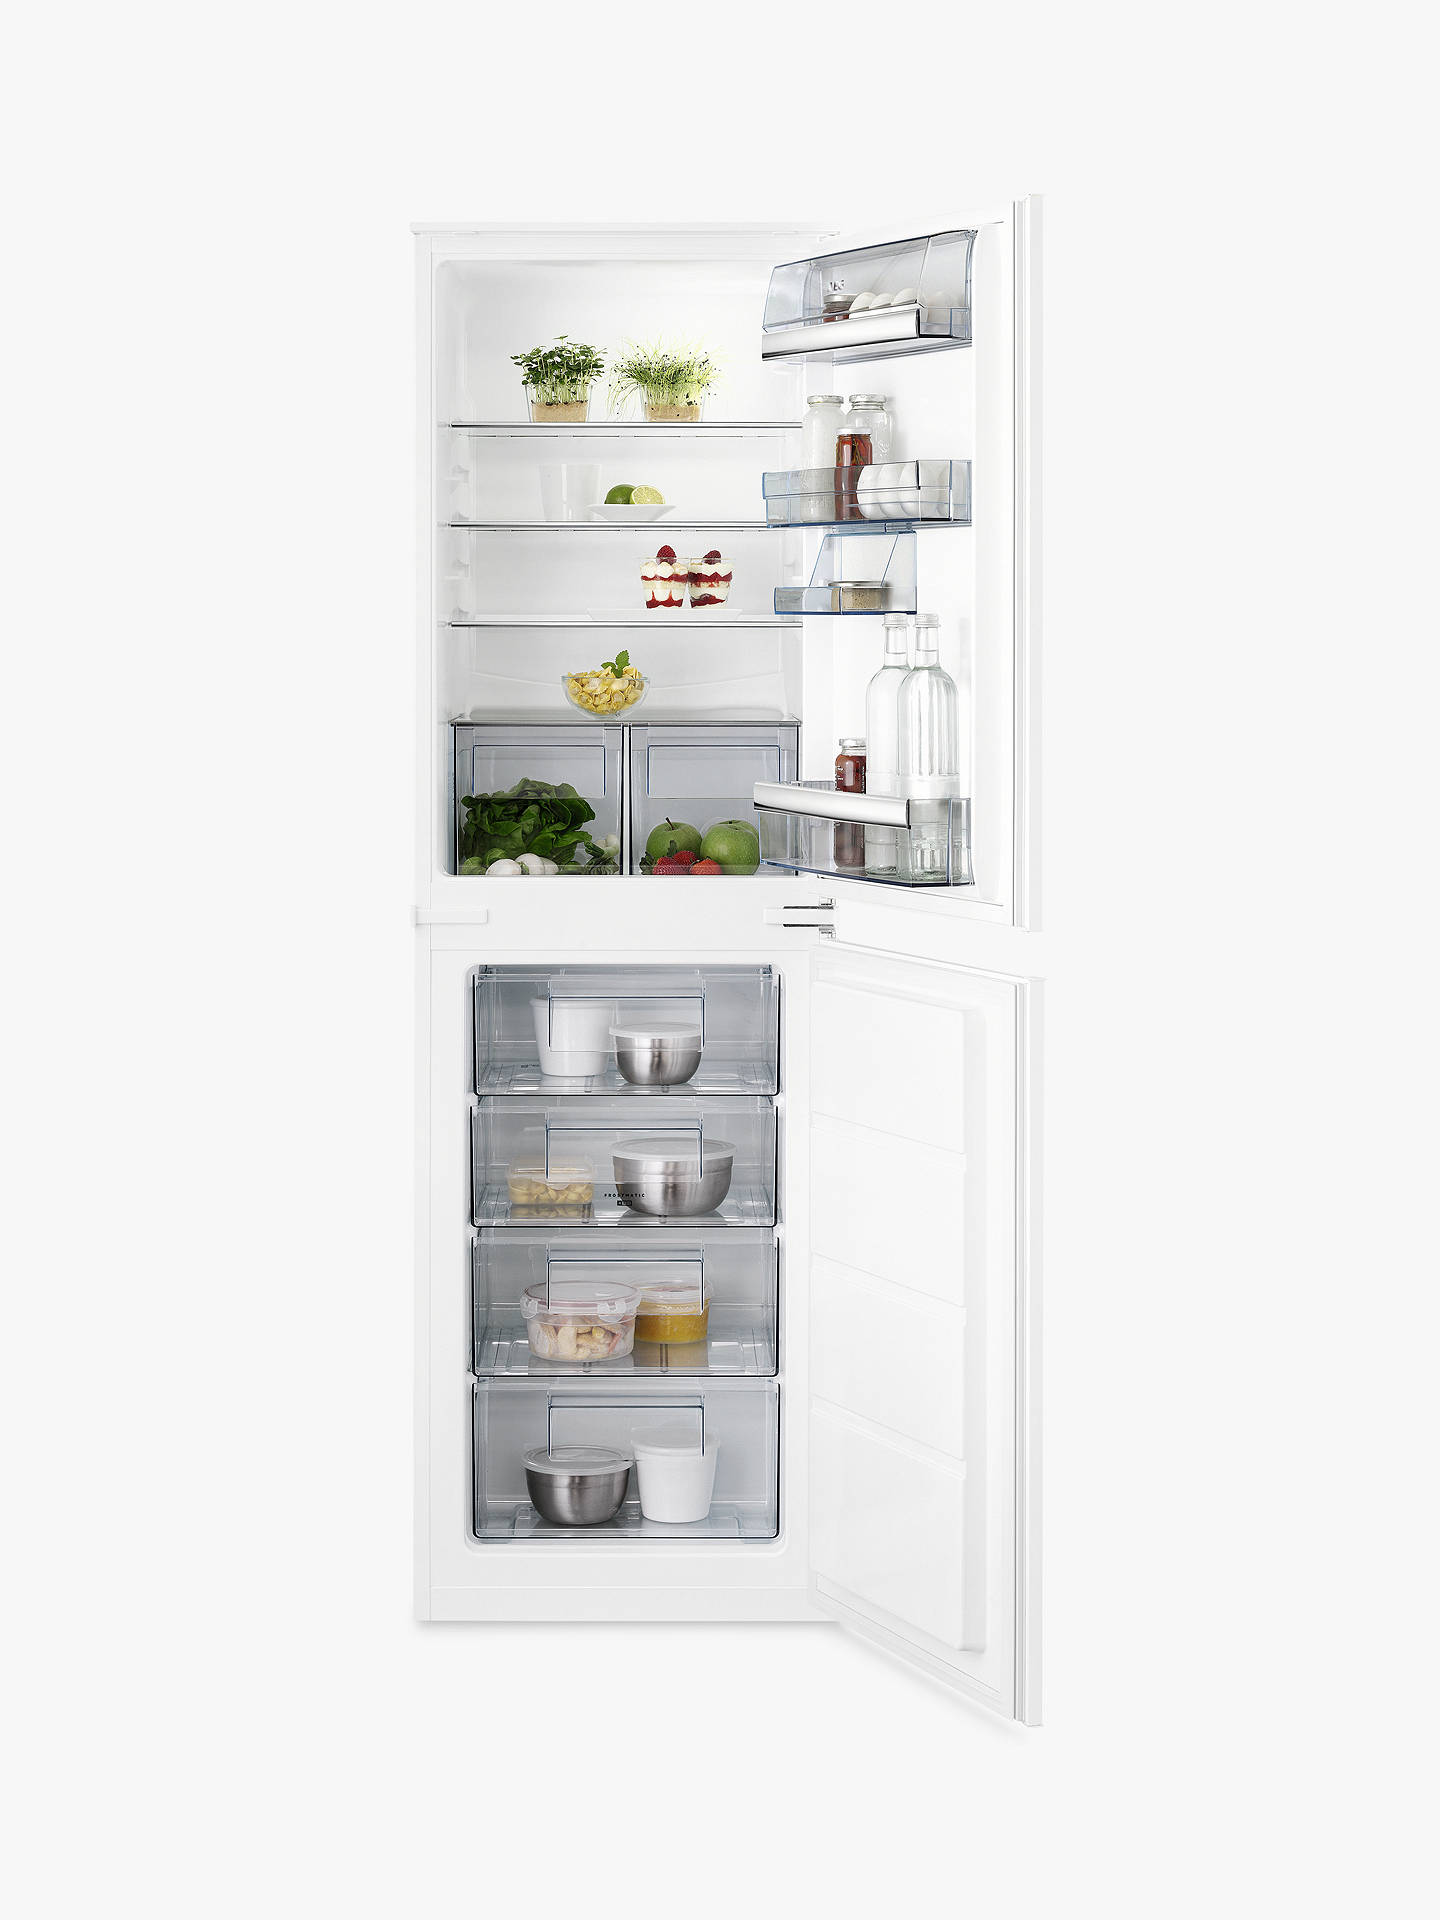 BuyAEG SCB6181VLS Integrated Fridge Freezer, A+ Energy Rating, 55cm Wide, White Online at johnlewis.com